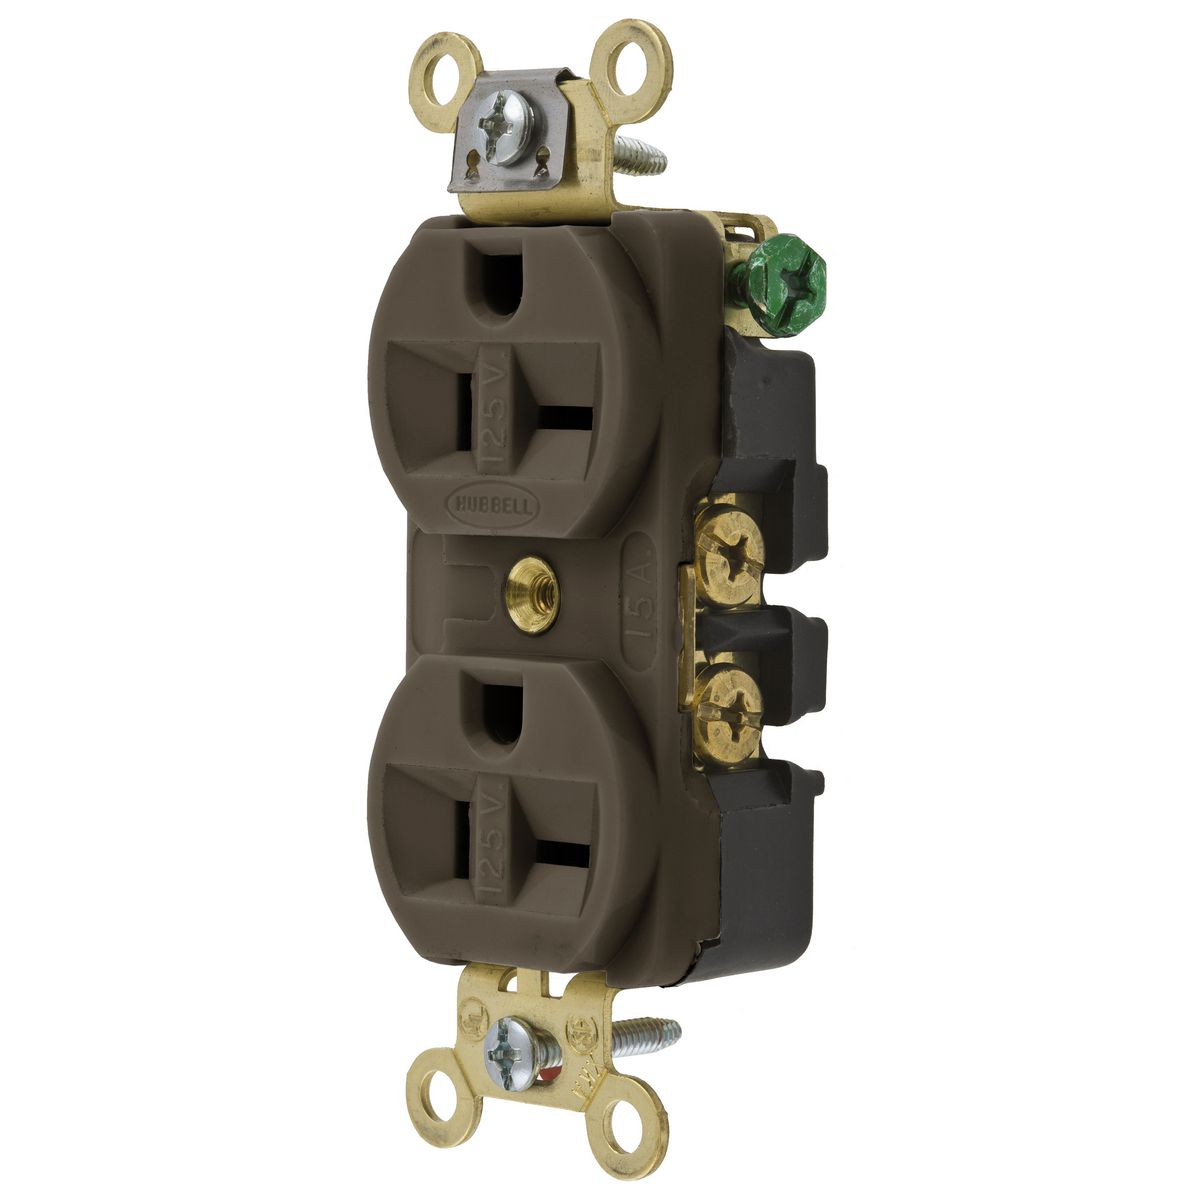 Hubbell HBL5392DUP Receptacle, 20A 125V, 5-20R(CAN), BR